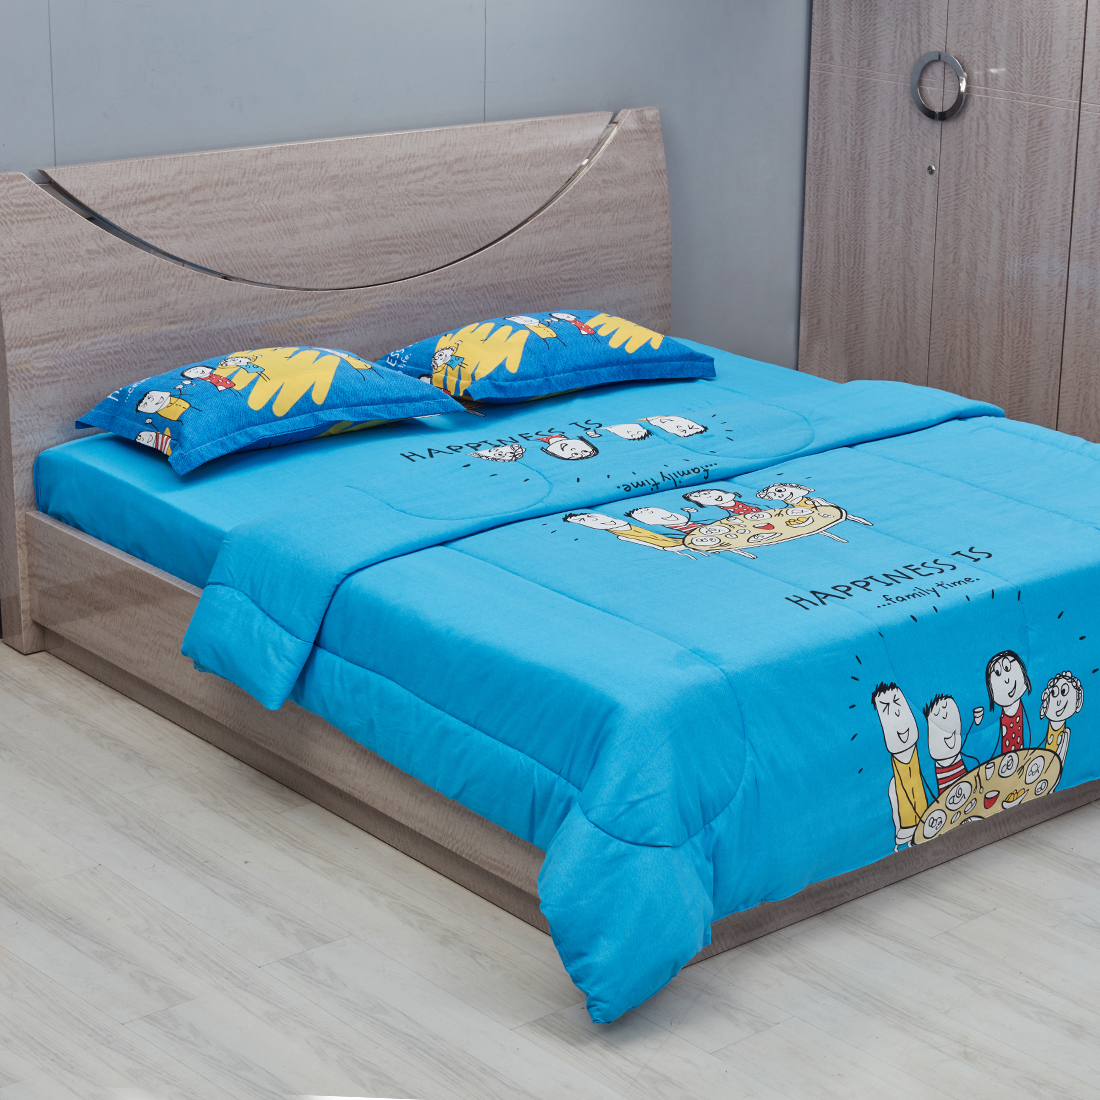 Happiness Double Comforter Blue Cotton Comforters in Blue Colour by Portico